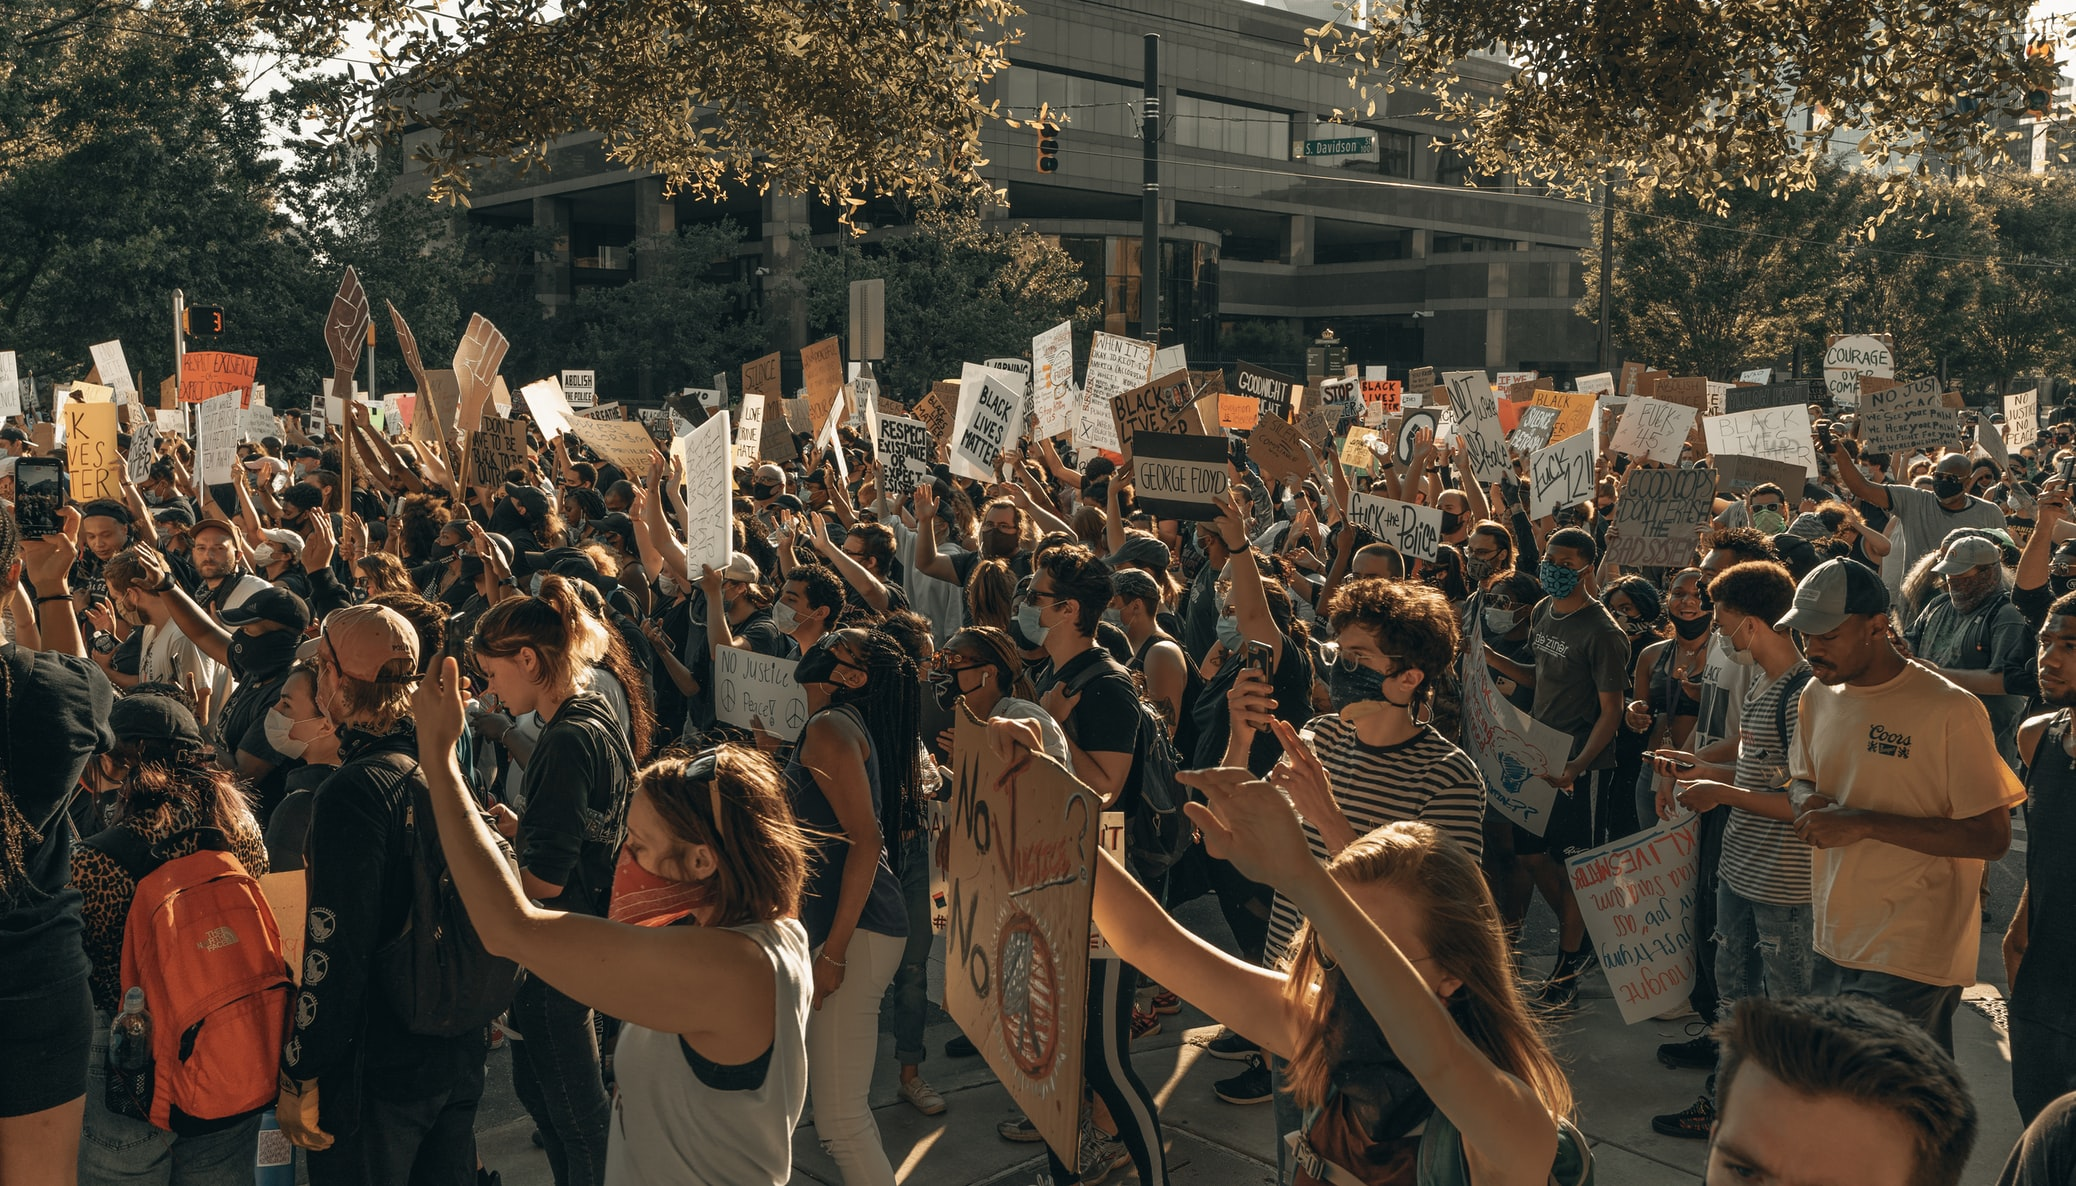 The Church, Protest, & Standing With